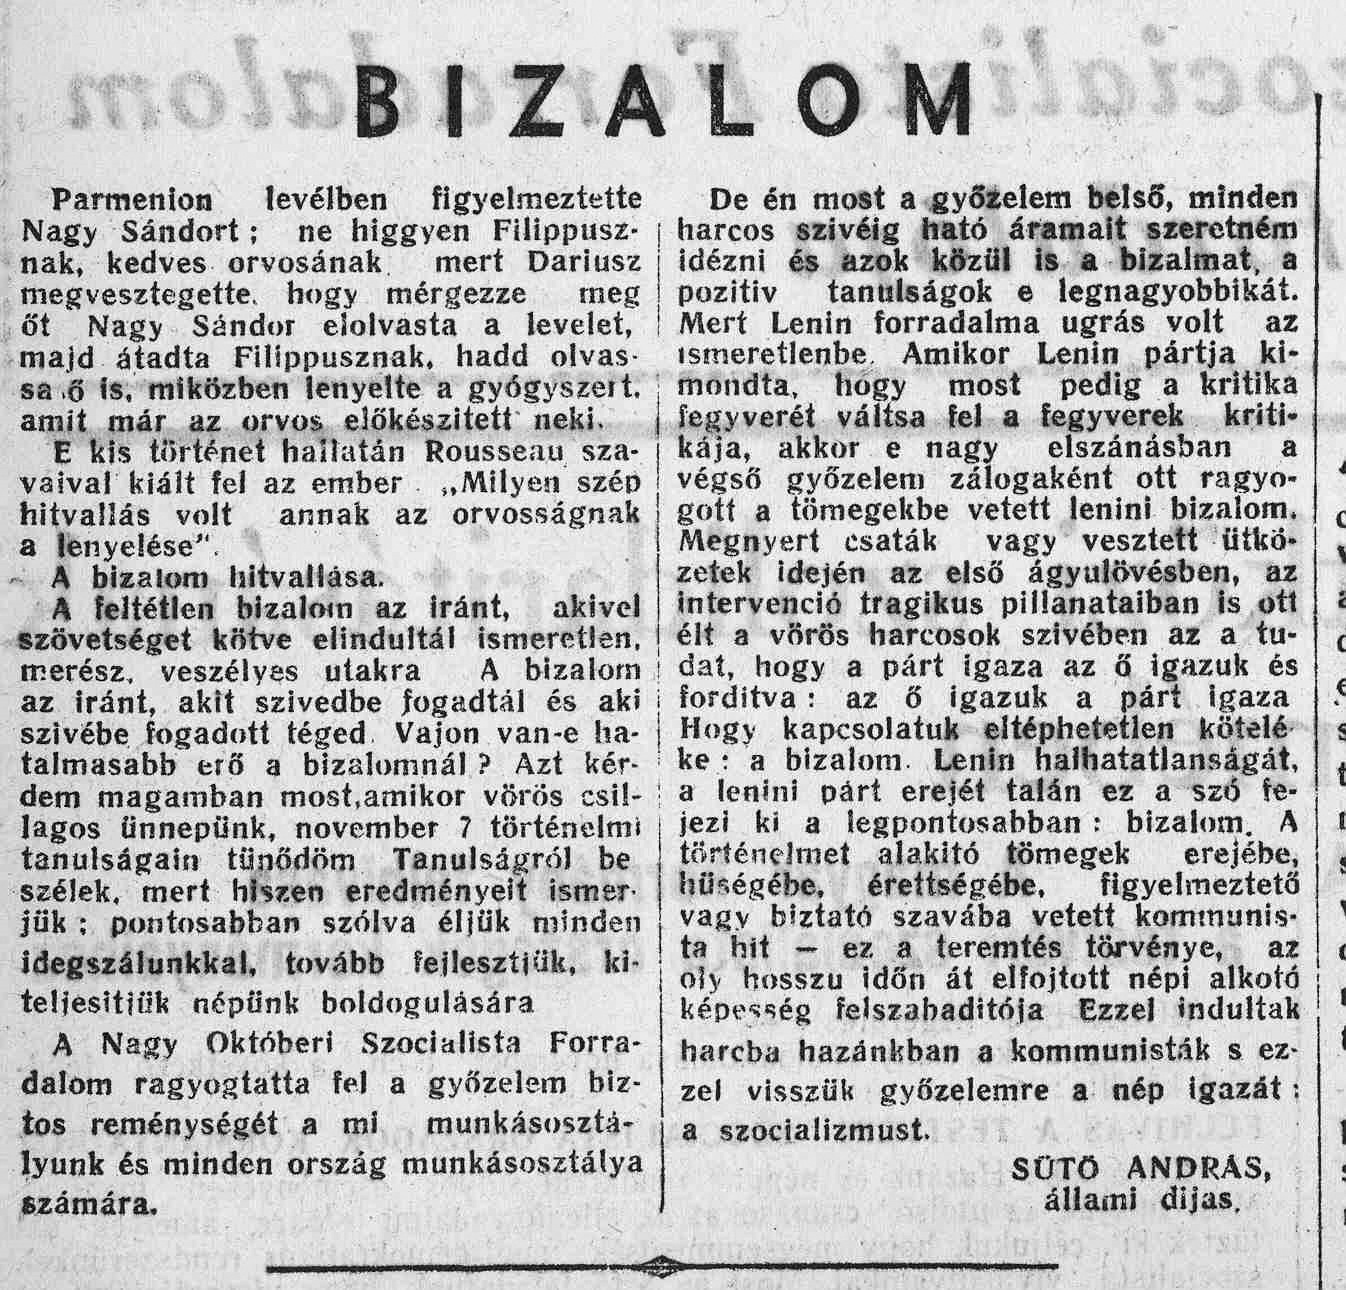 0 Bizalom - Incredere editorial Andras Suto